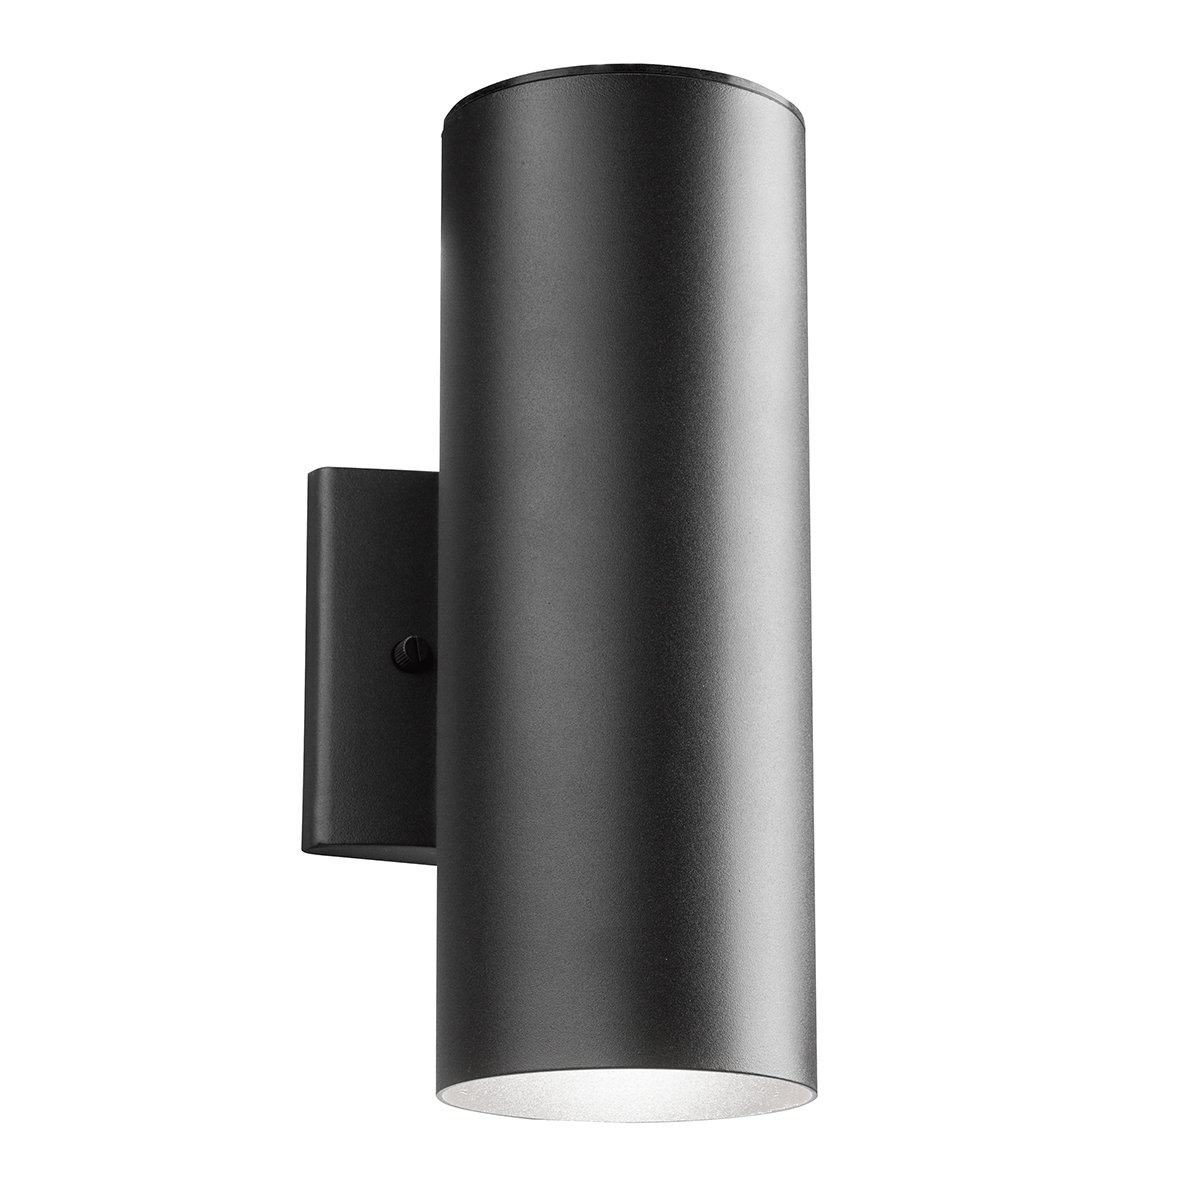 Wall Mount Outdoor Lighting Kichler 11251bkt30 signature 2 light small outdoor wall in textured kichler 11251bkt30 signature 2 light small outdoor wall in textured black amazon workwithnaturefo